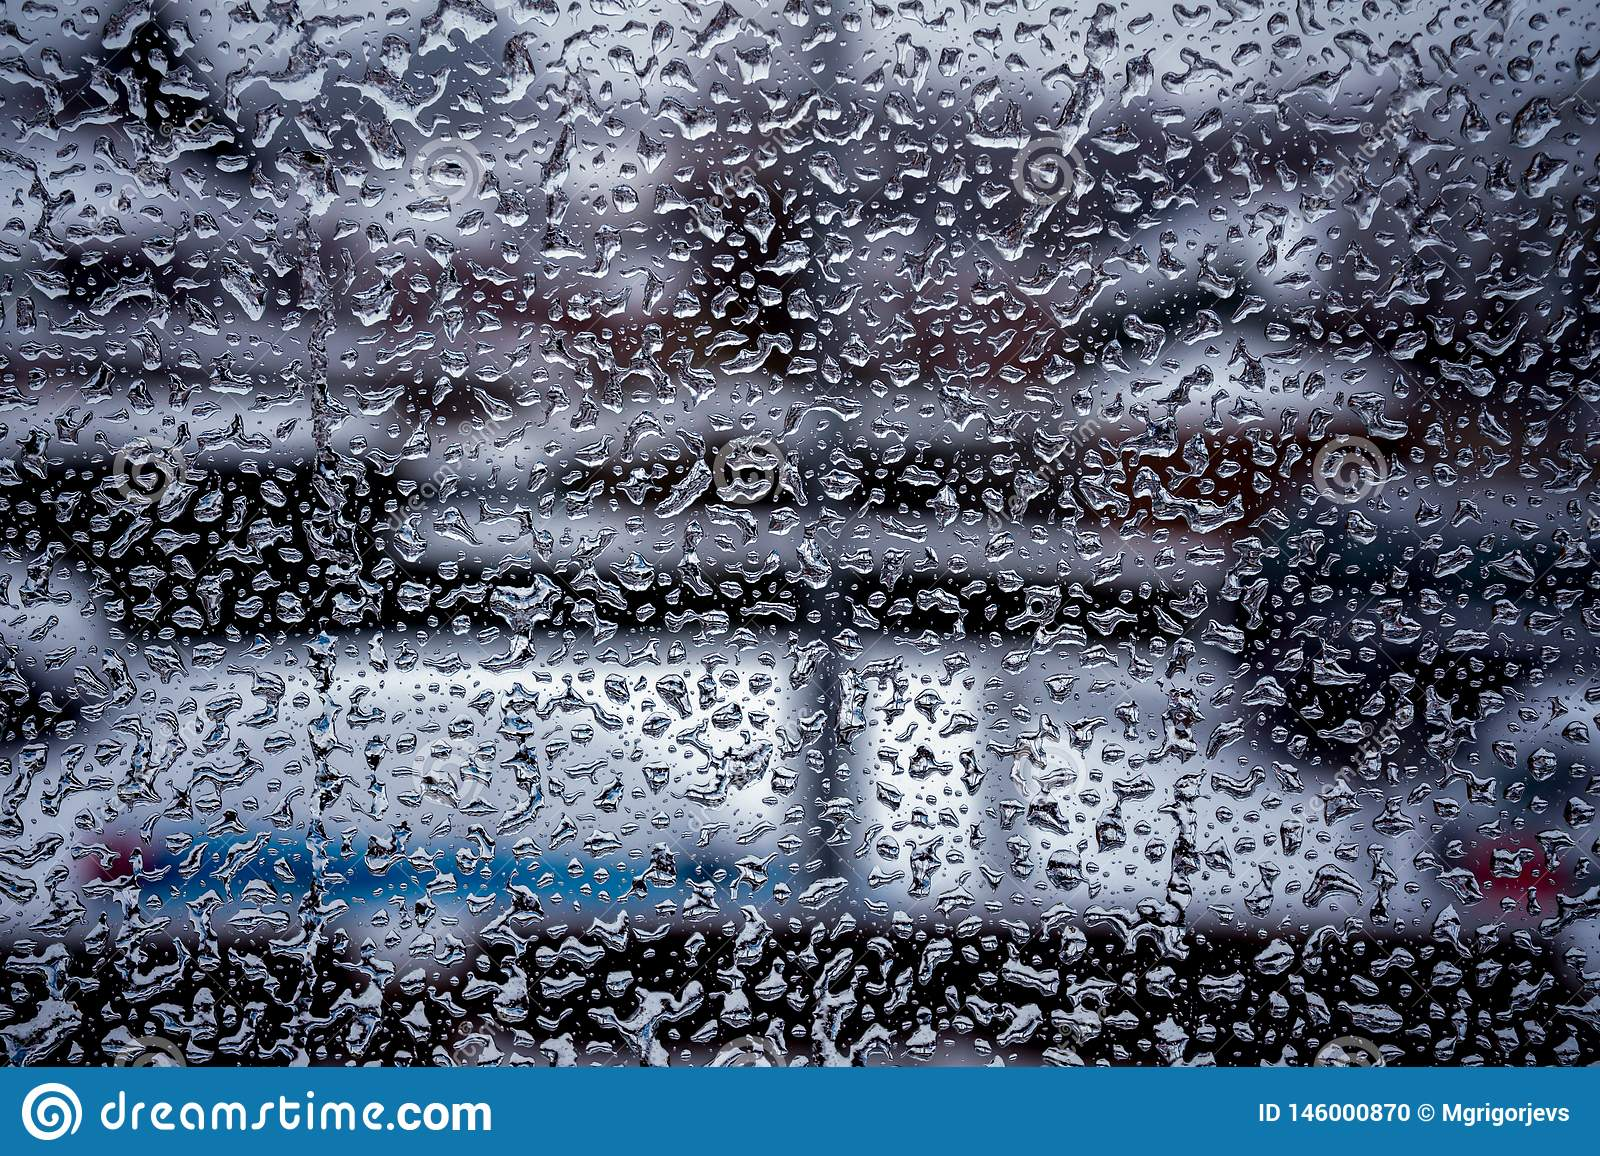 Rain drops on window glass surface with cloudy background